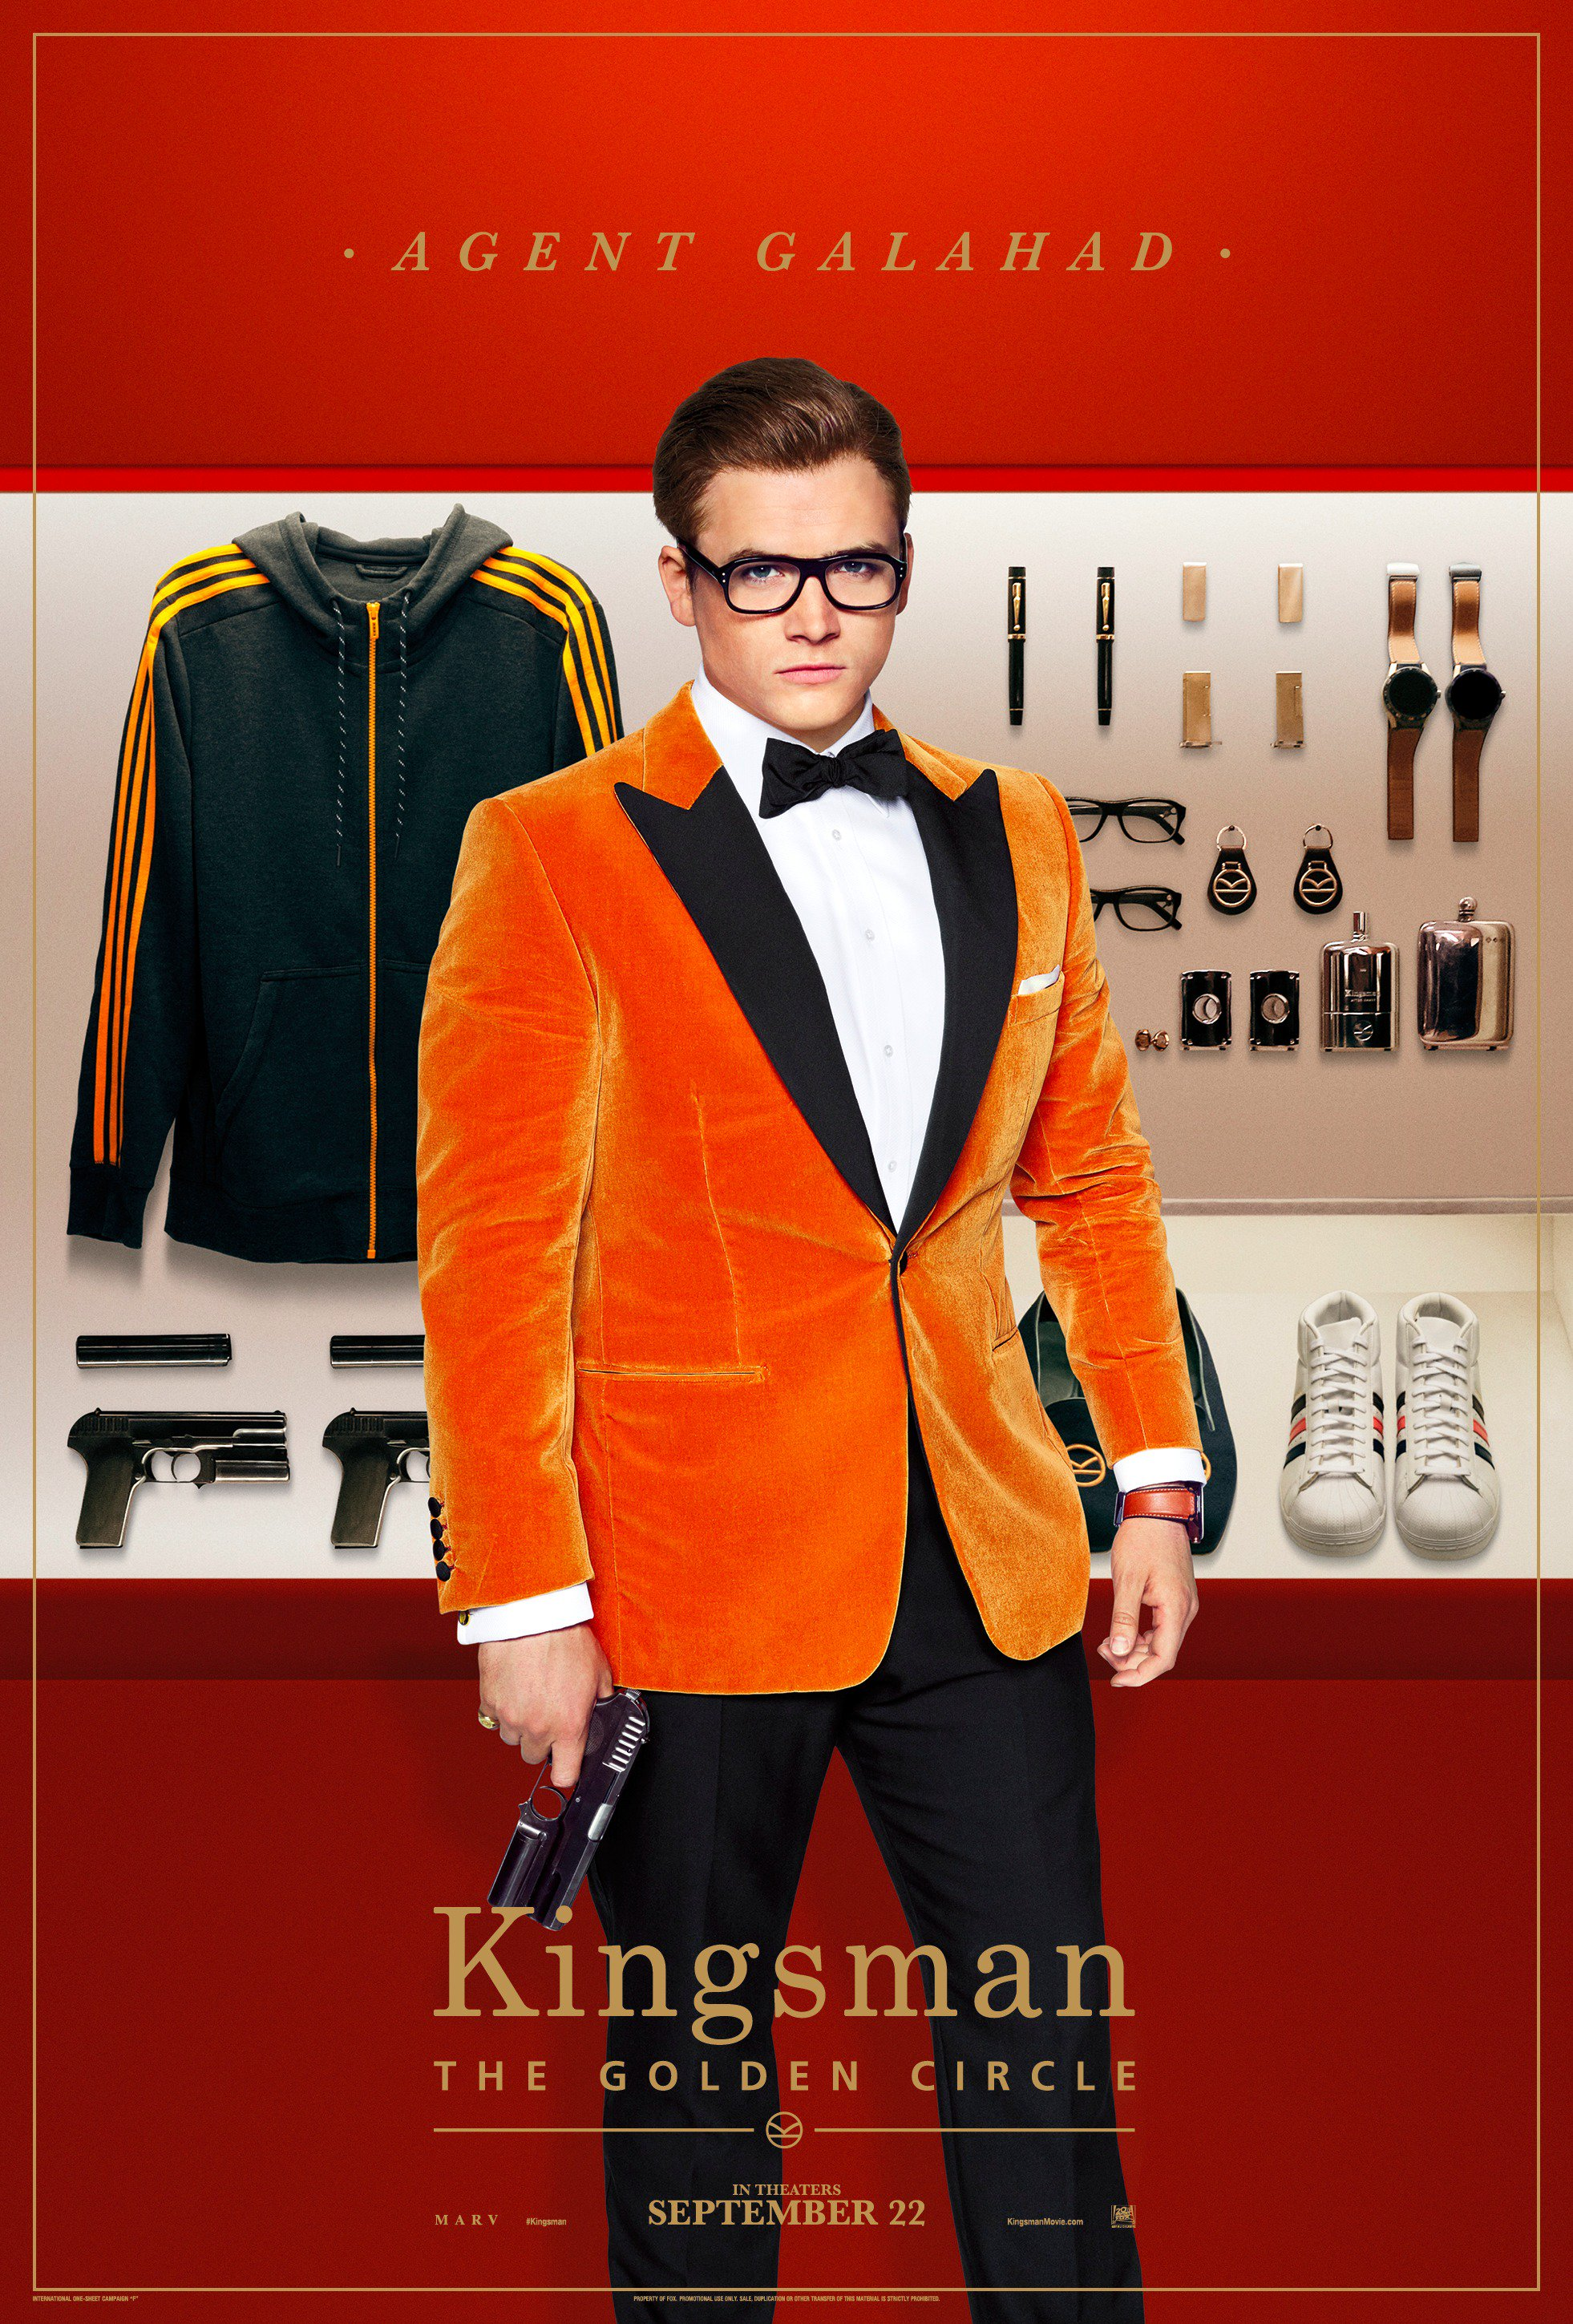 Kingsman Golden Circle karakterposters Agent Galahad